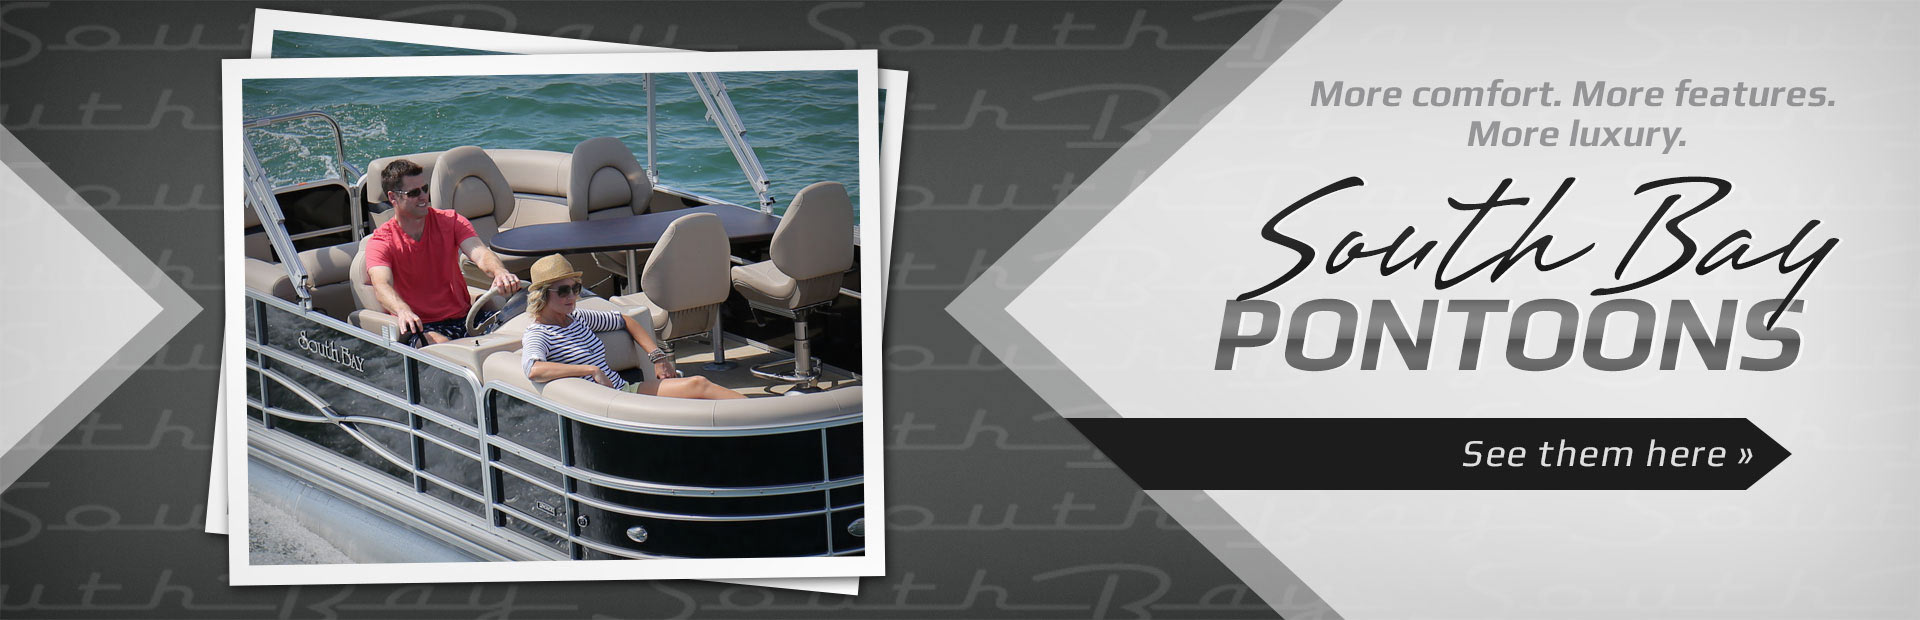 South Bay Pontoons: Click here to view the models.